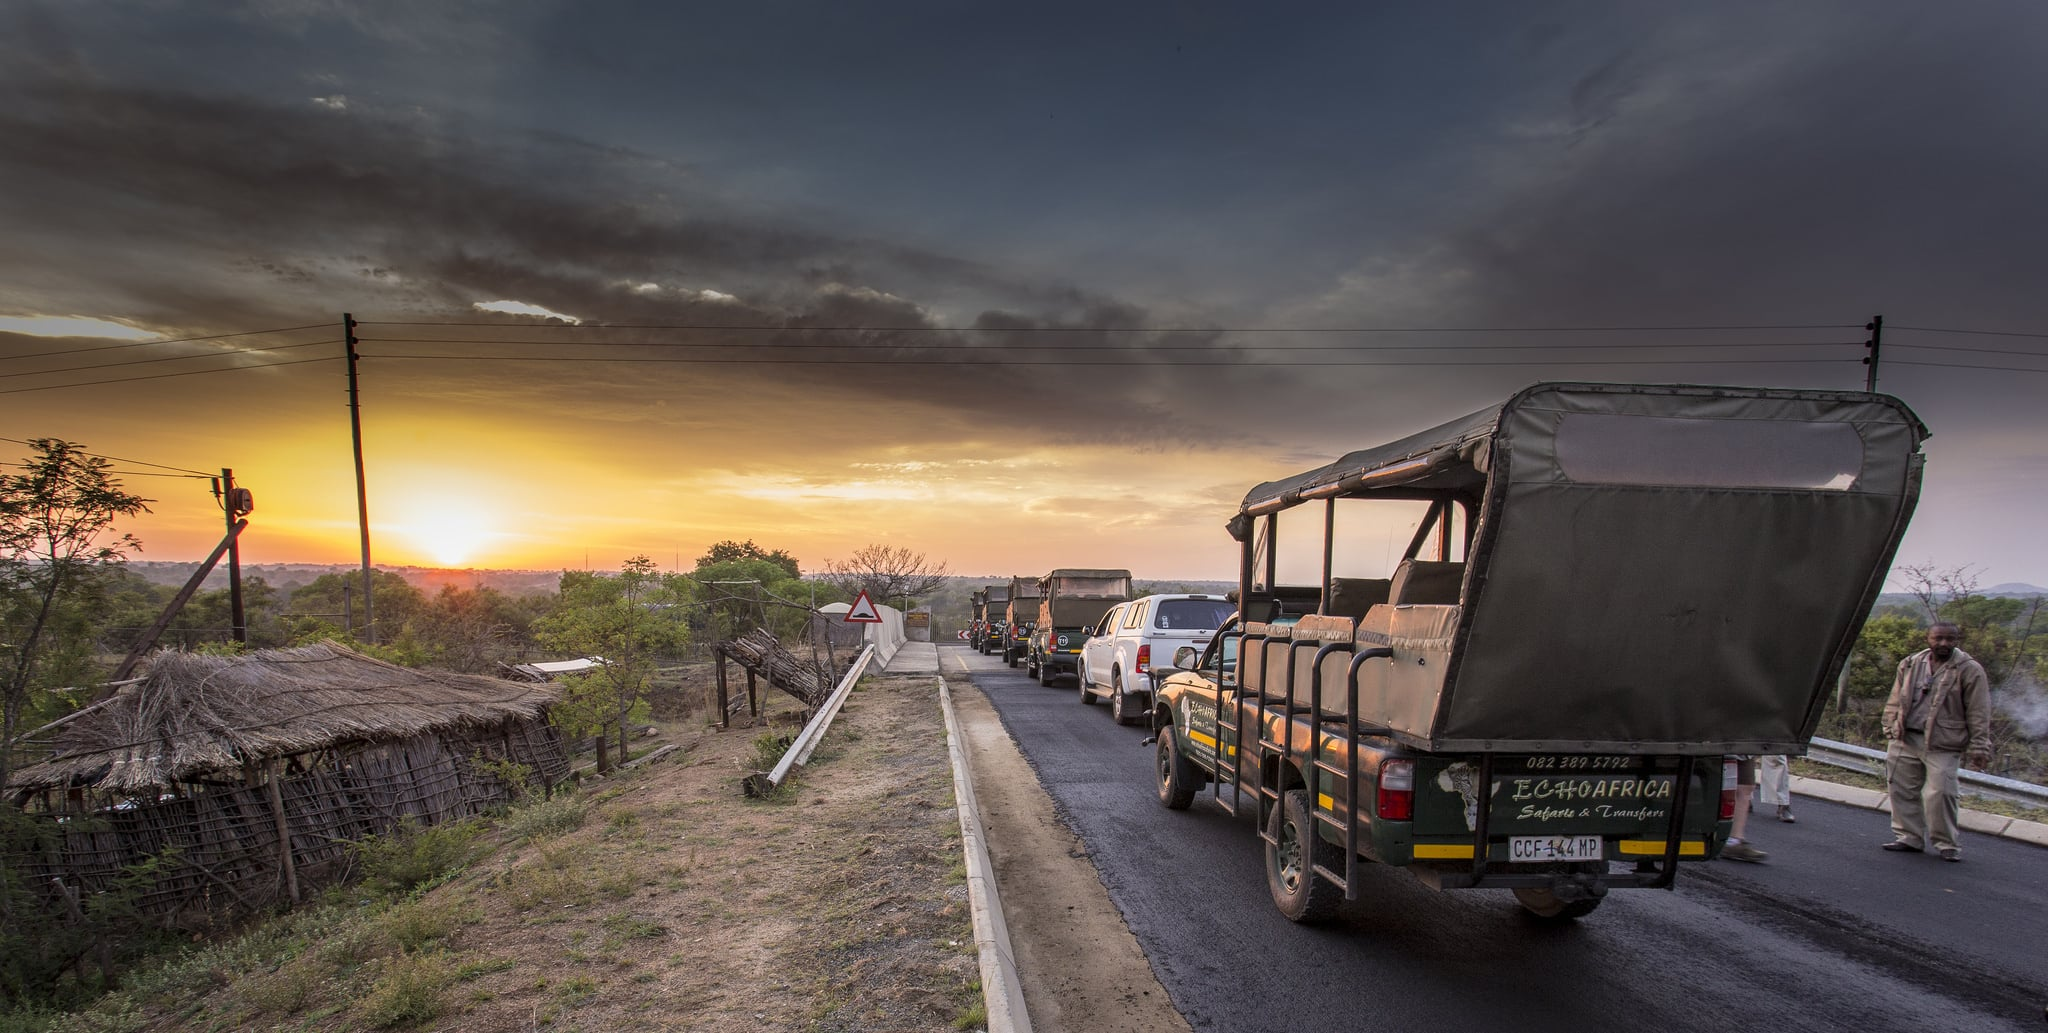 Queue of tour operator Open Safaris Vehicles at dawn, Phabeni gate, sheldrickfalls